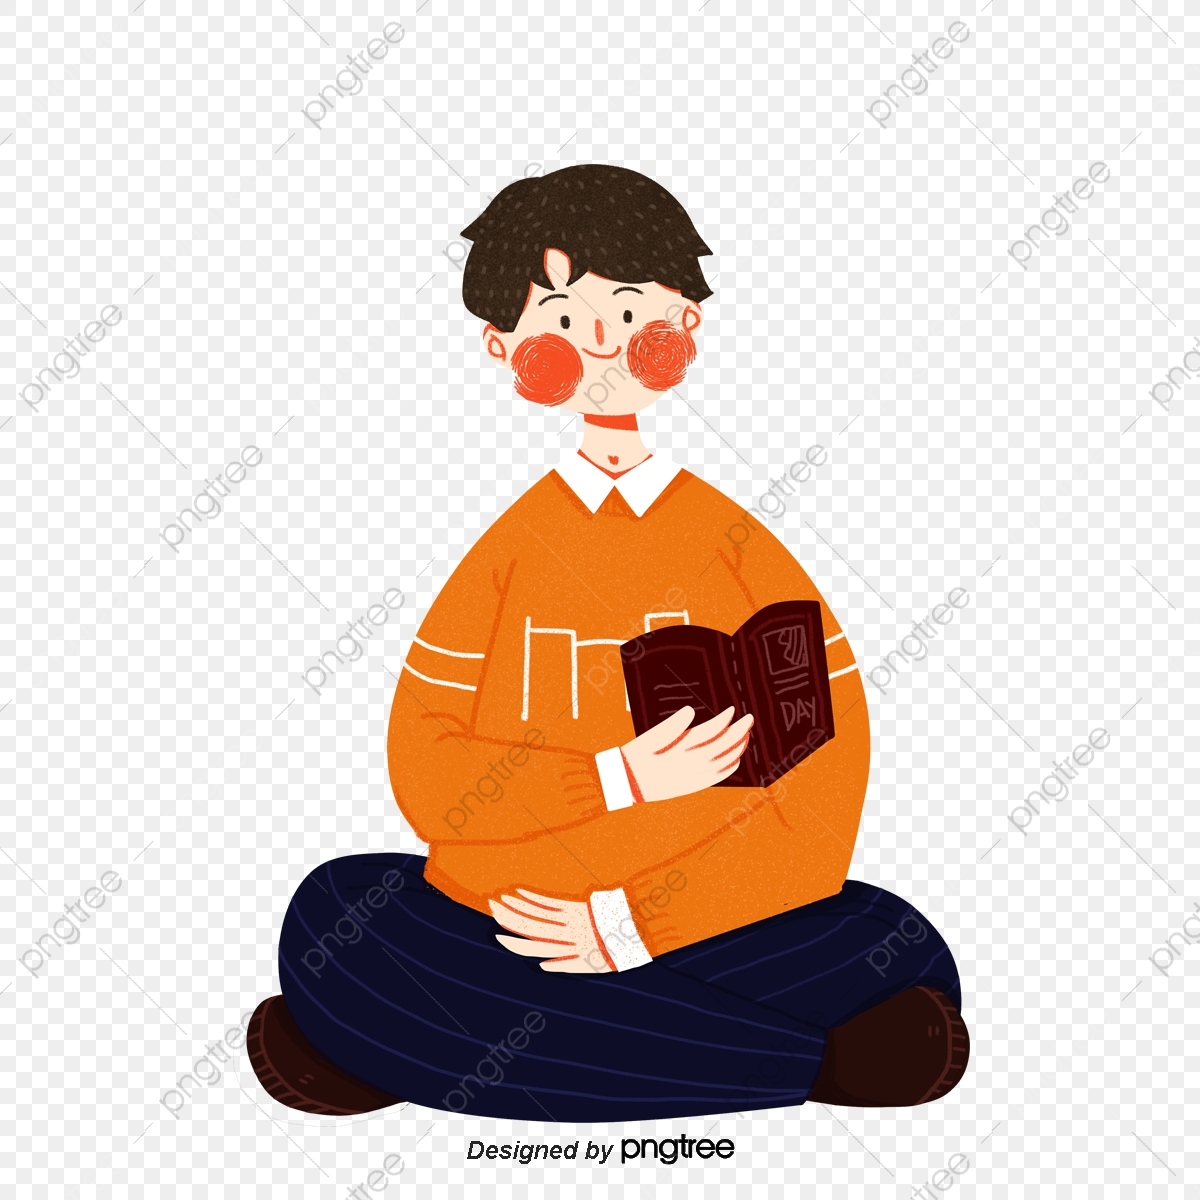 Cartoon Boys Sit Reading Book Element Cartoon Style Png Transparent Clipart Image And Psd File For Free Download